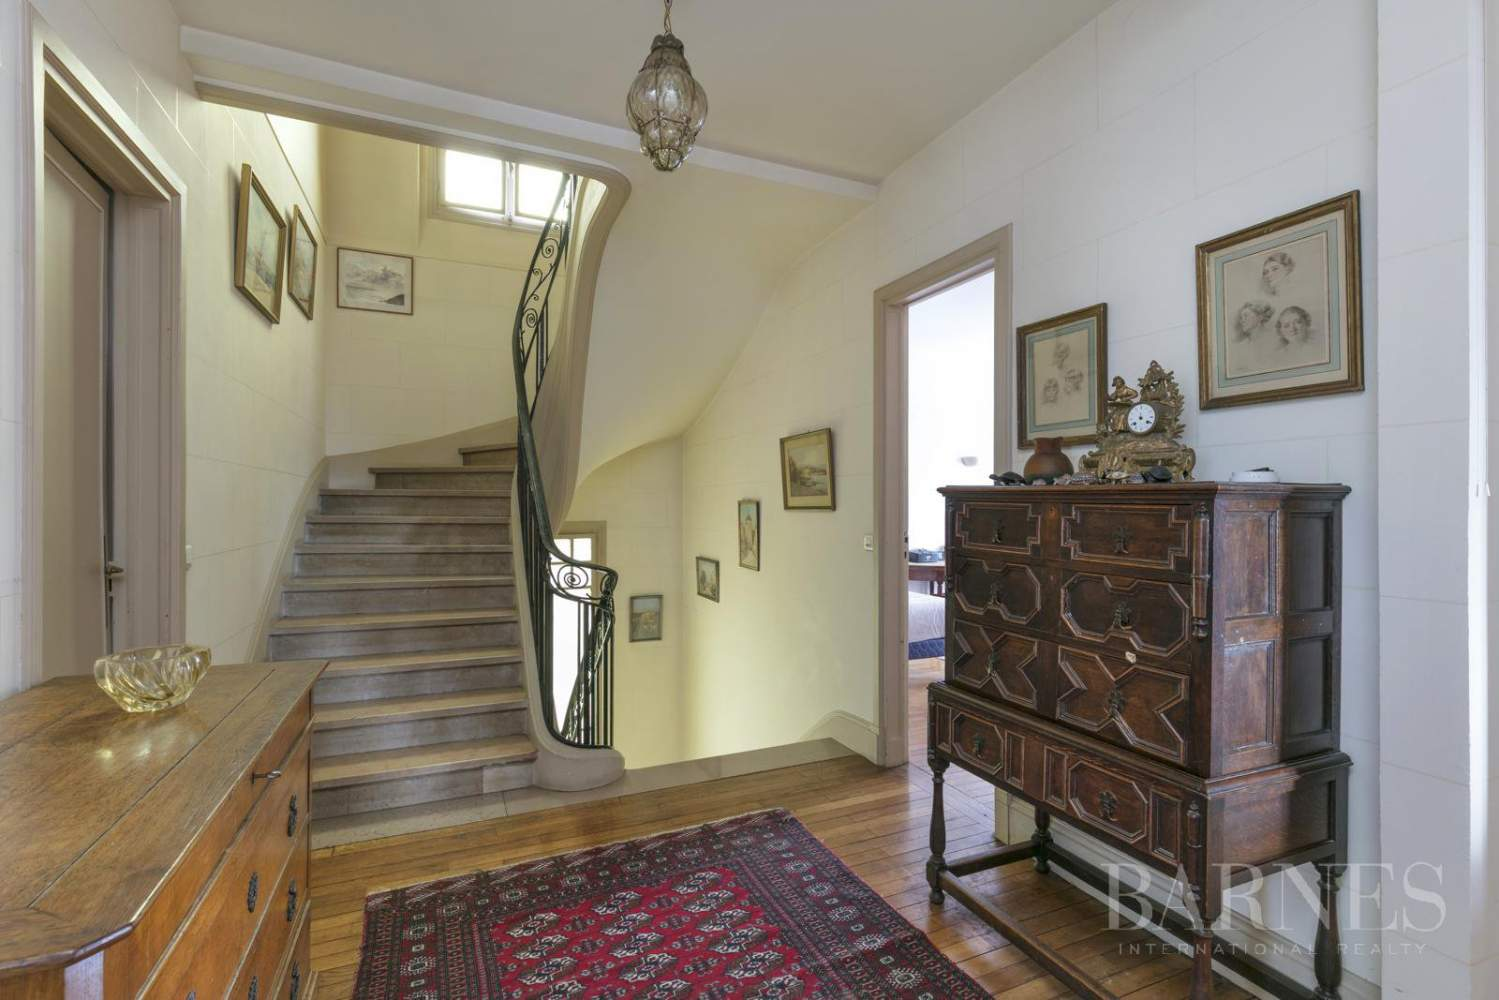 BOURGEOIS HOUSE WITH GARDEN - PRIVATE ROAD - NEUILLY/SAINT-JAMES picture 17